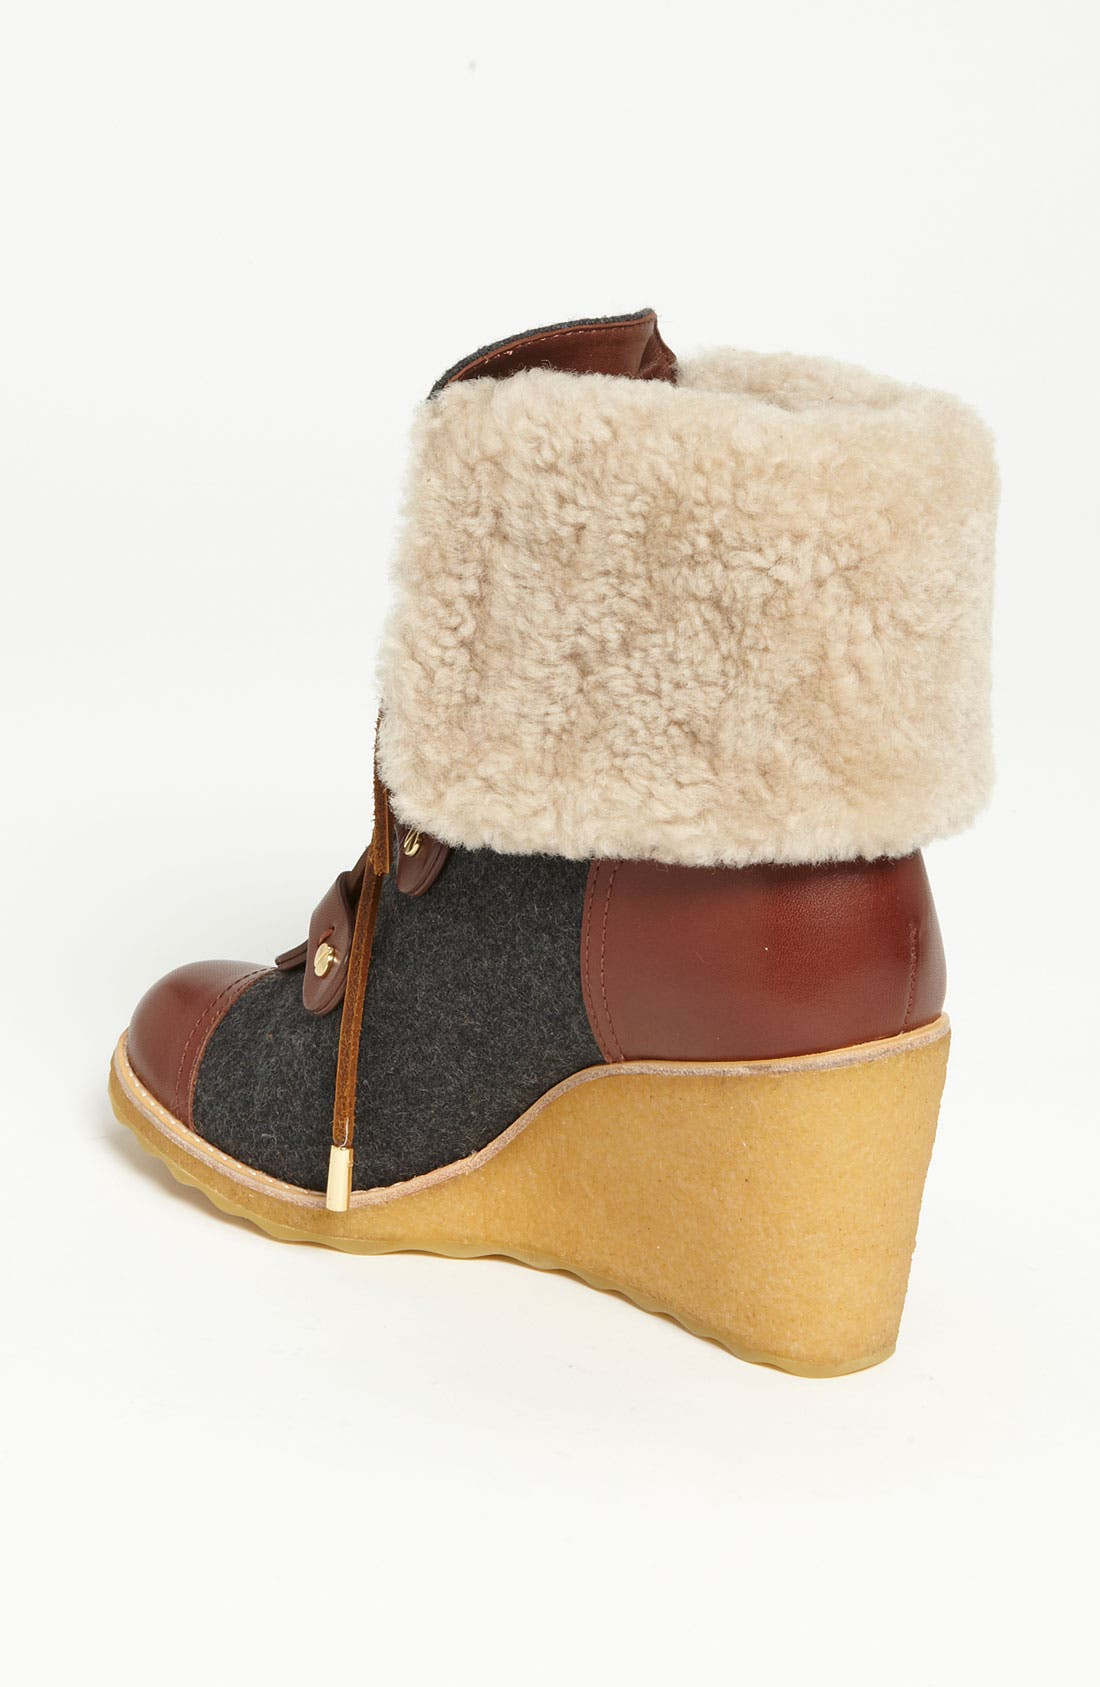 Alternate Image 2  - Tory Burch 'Marley' Wedge Bootie